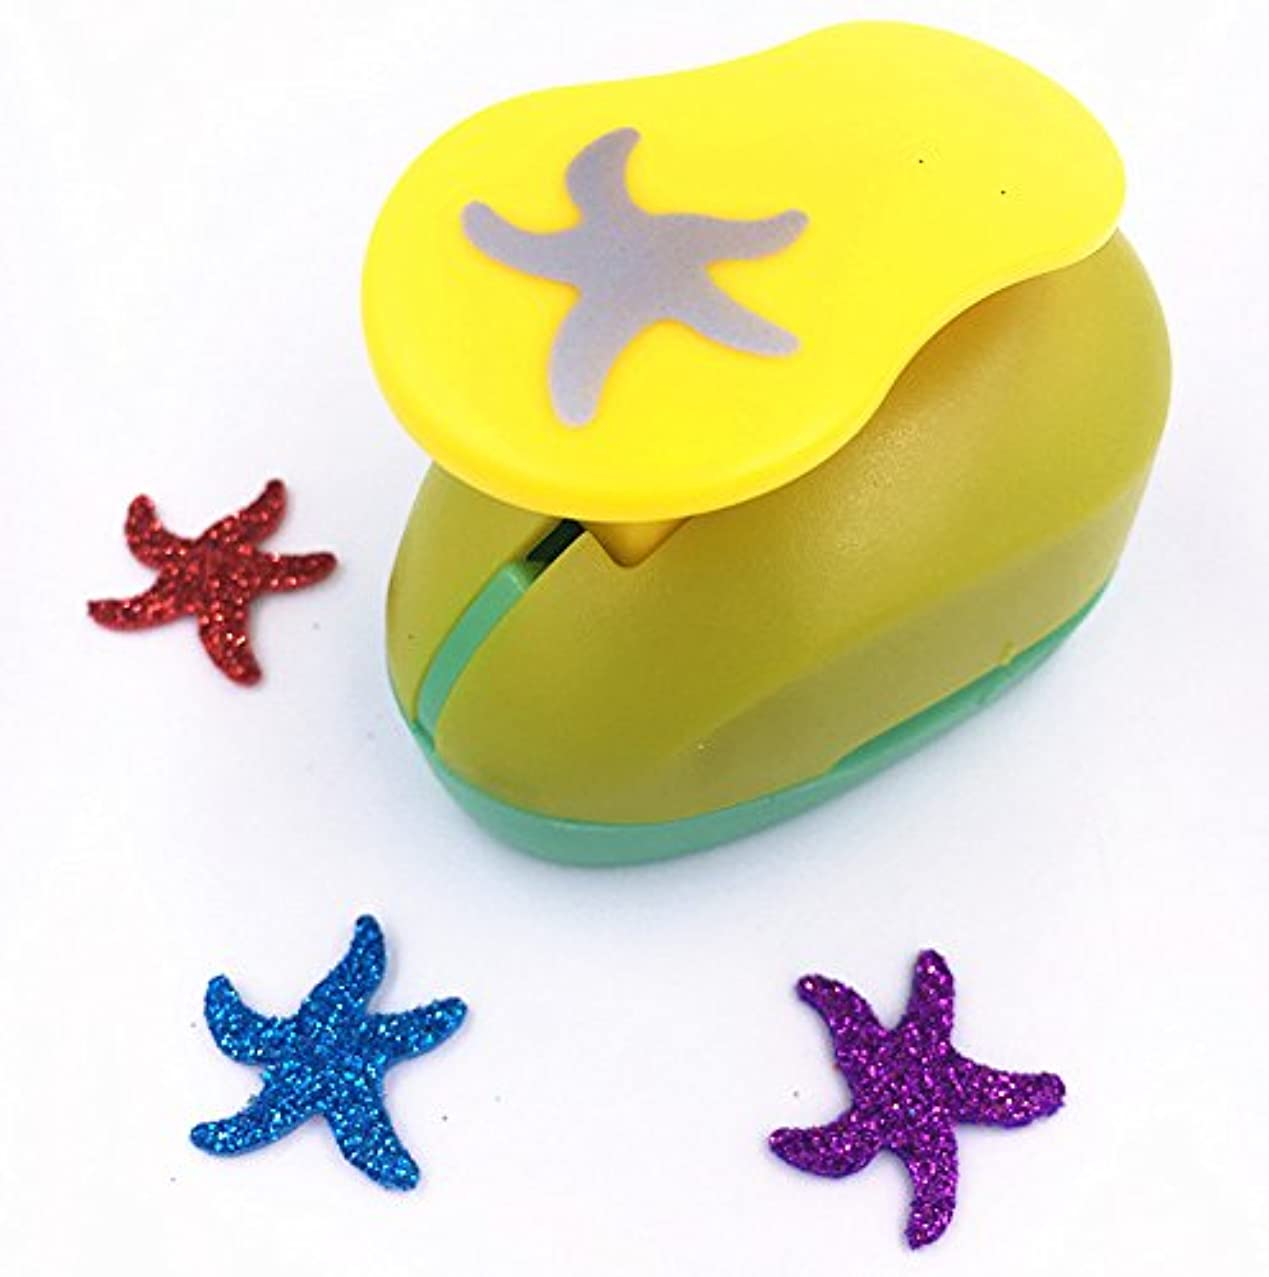 TECH-P Creative Life(2CM-2.5CM) Multi-pattern Hand Press Album Cards Paper Craft Punch,card Scrapbooking Engraving Kid Cut DIY Handmade Hole Puncher. (Starfish)